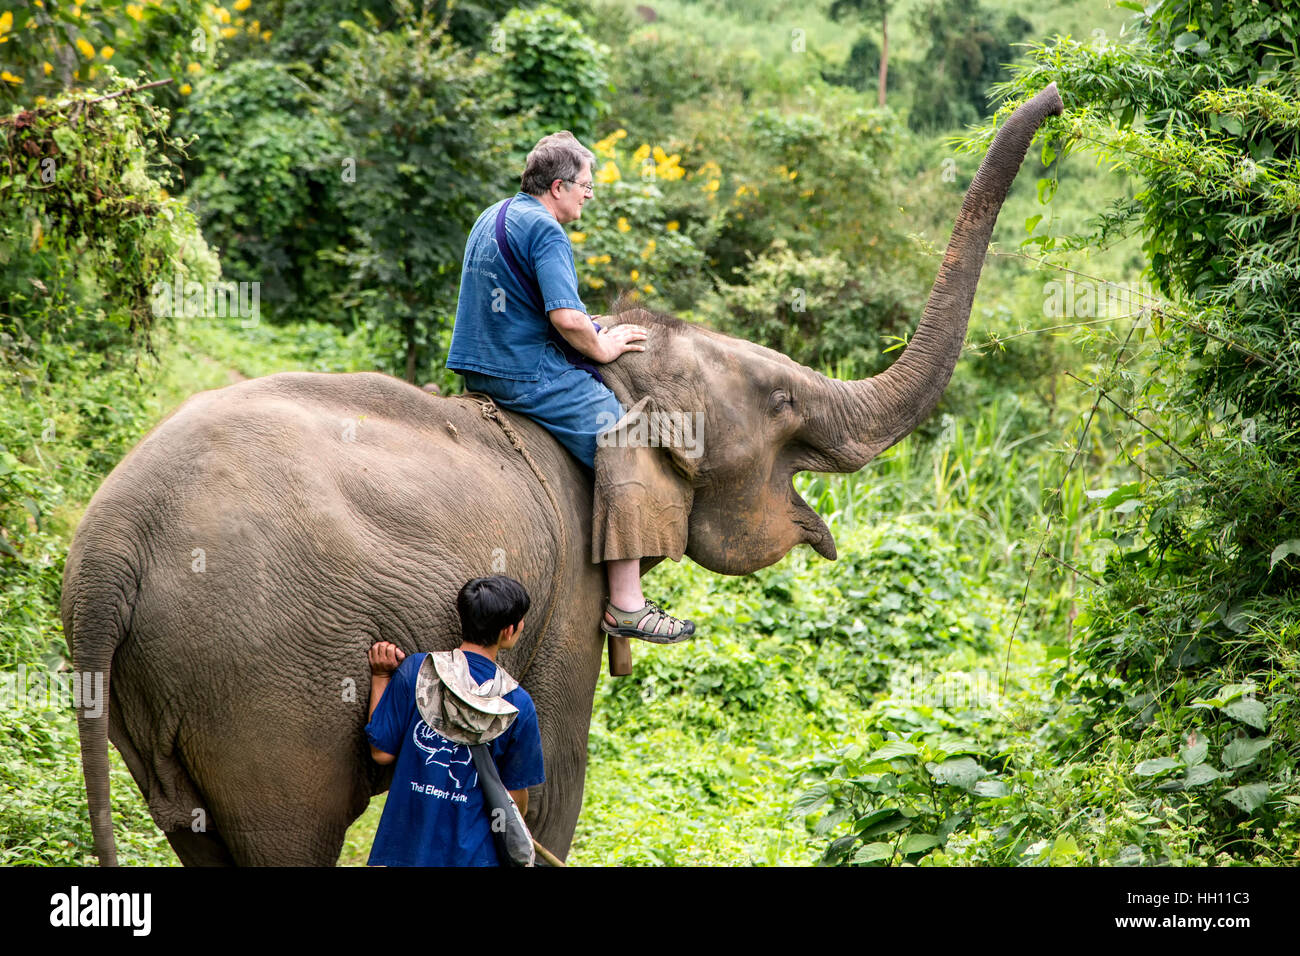 Man riding Asian elephant (Elephas maximus) on jungle trail, Thai Elephant Home elephant farm, Keudchang Maetang, - Stock Image